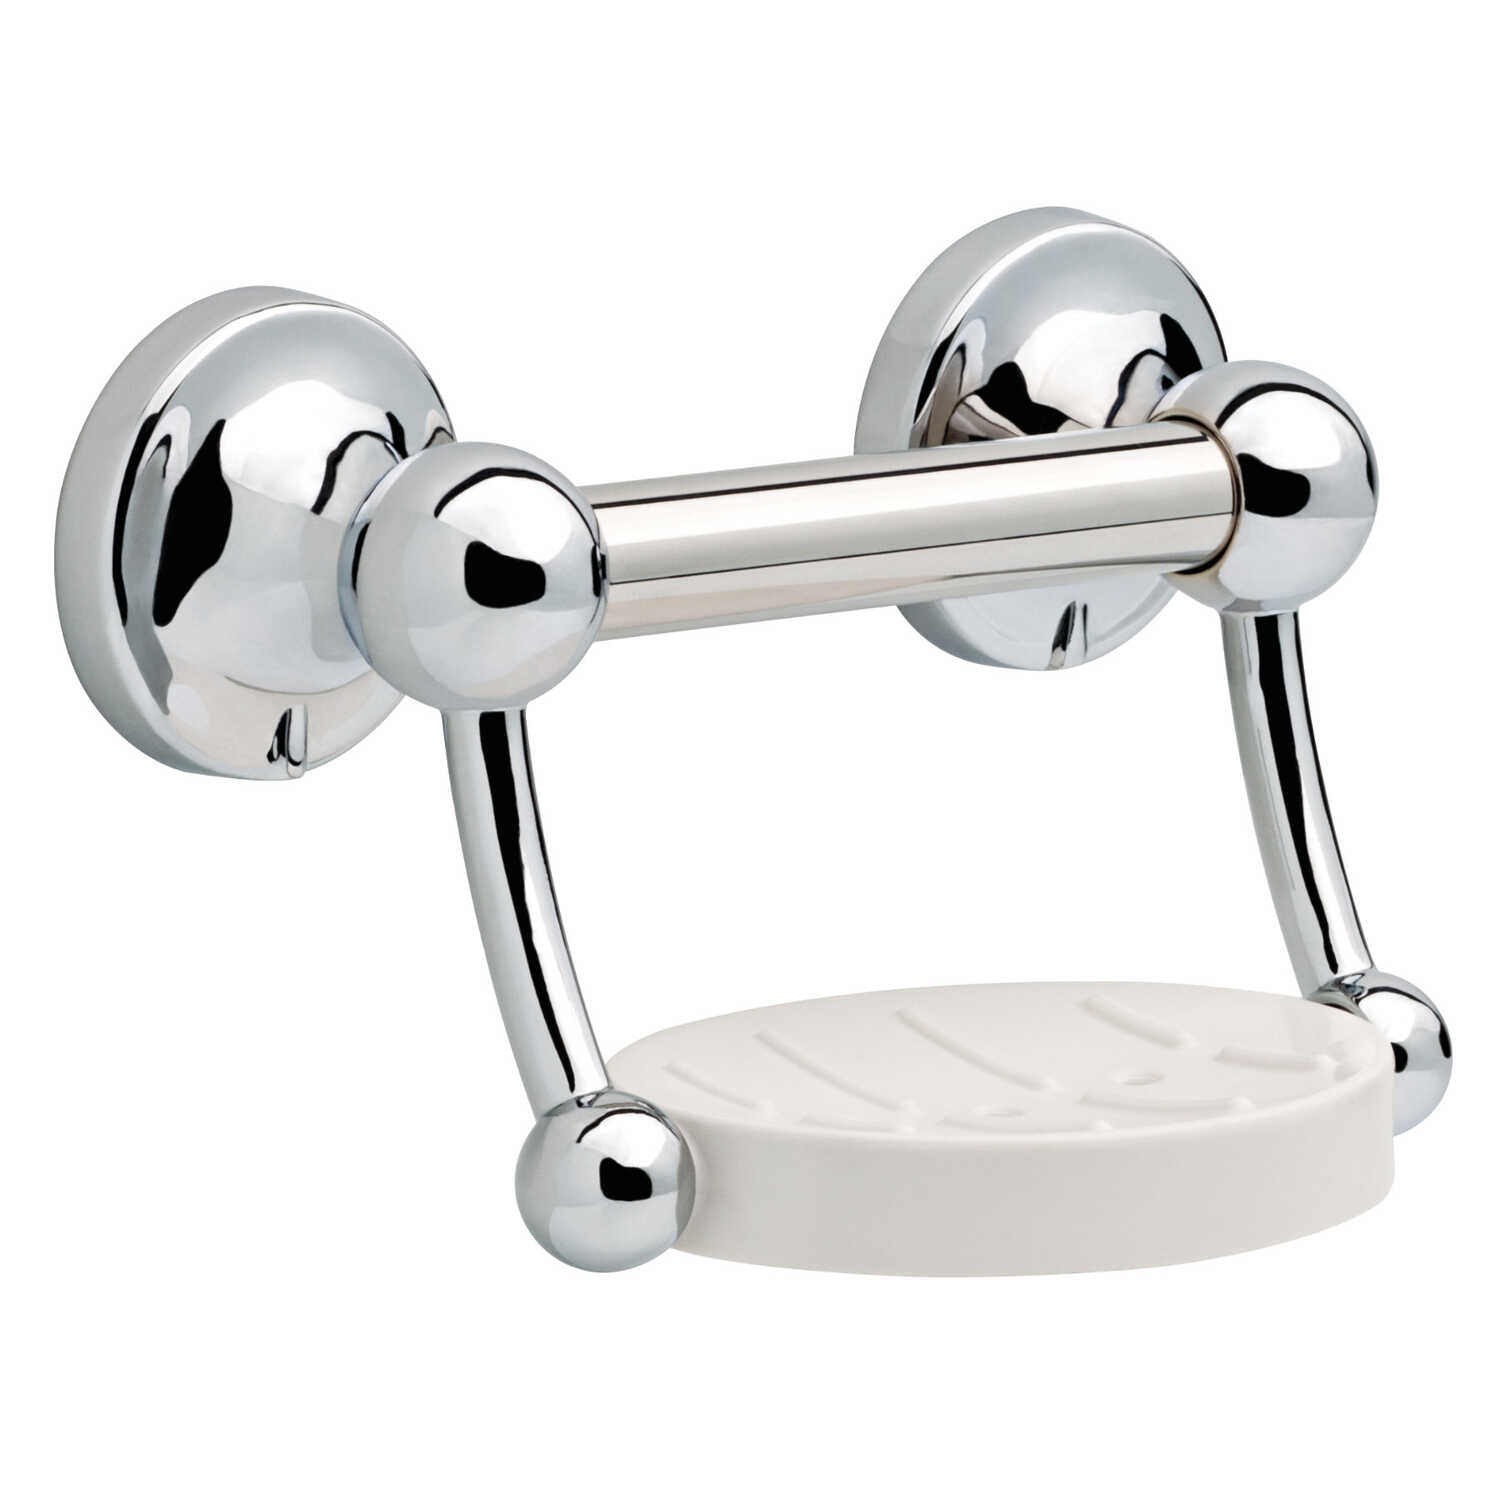 Delta  Polished Chrome  Stainless Steel  Soap Dish with Assist Bar  5 in. H x 9.2 in. W x 9 in. L